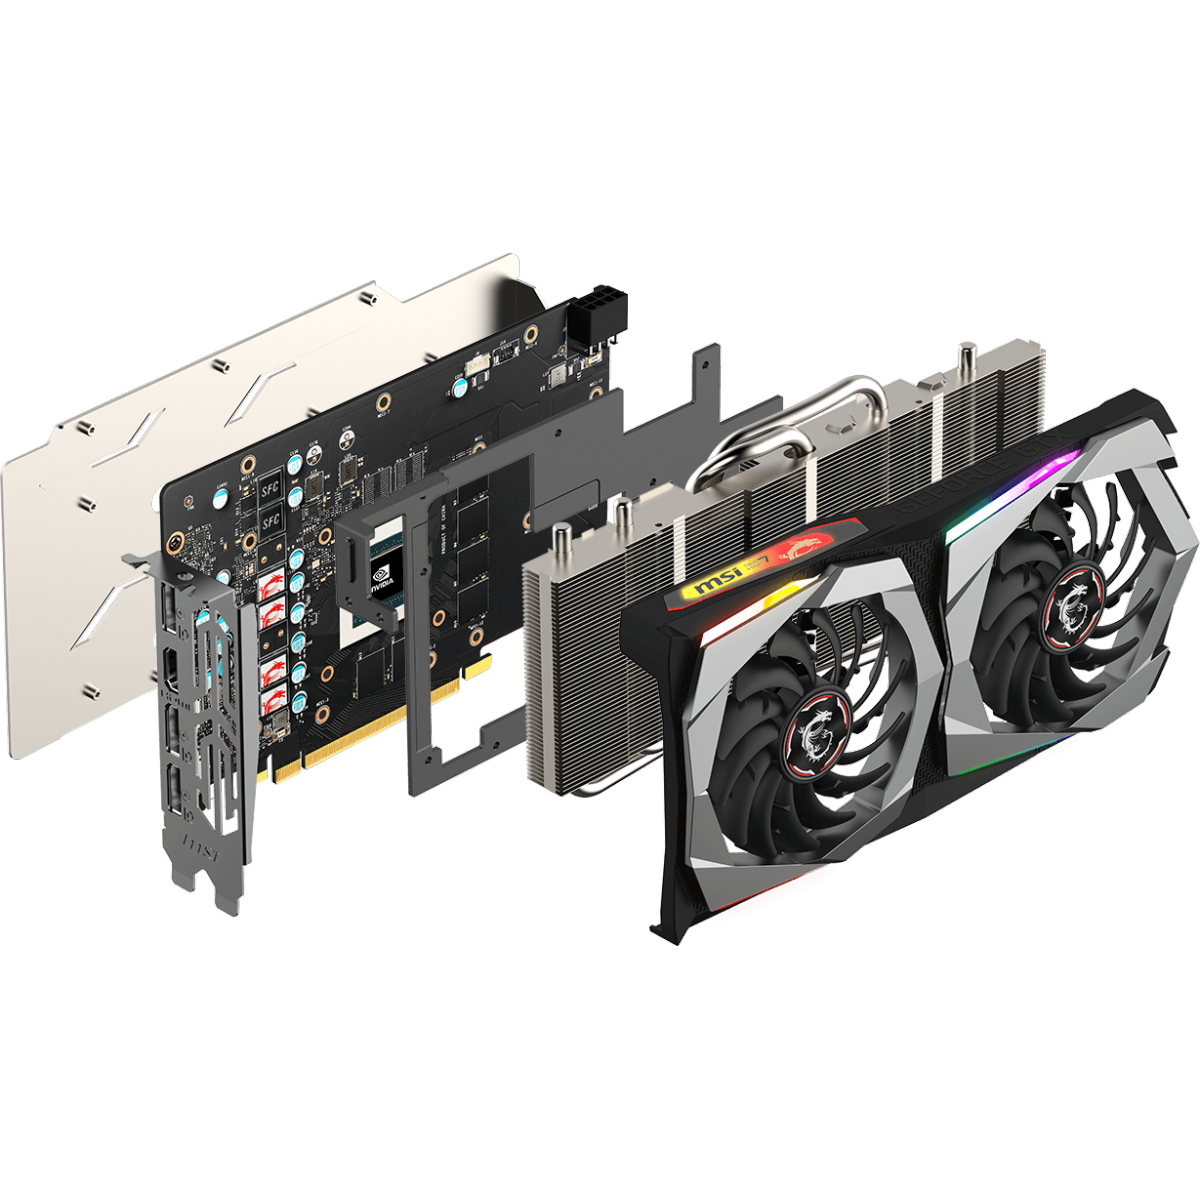 Placa de Vídeo MSI GeForce GTX 1660 Super Gaming X, 6GB GDDR6, 192Bit